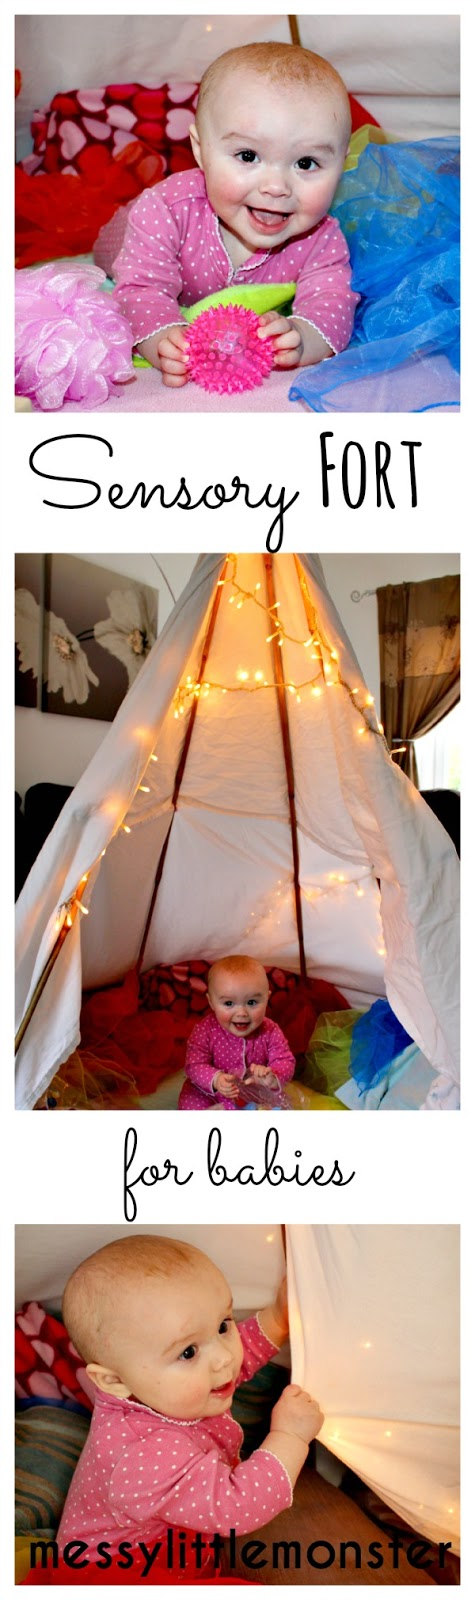 Sensory fort for babies, play spaces